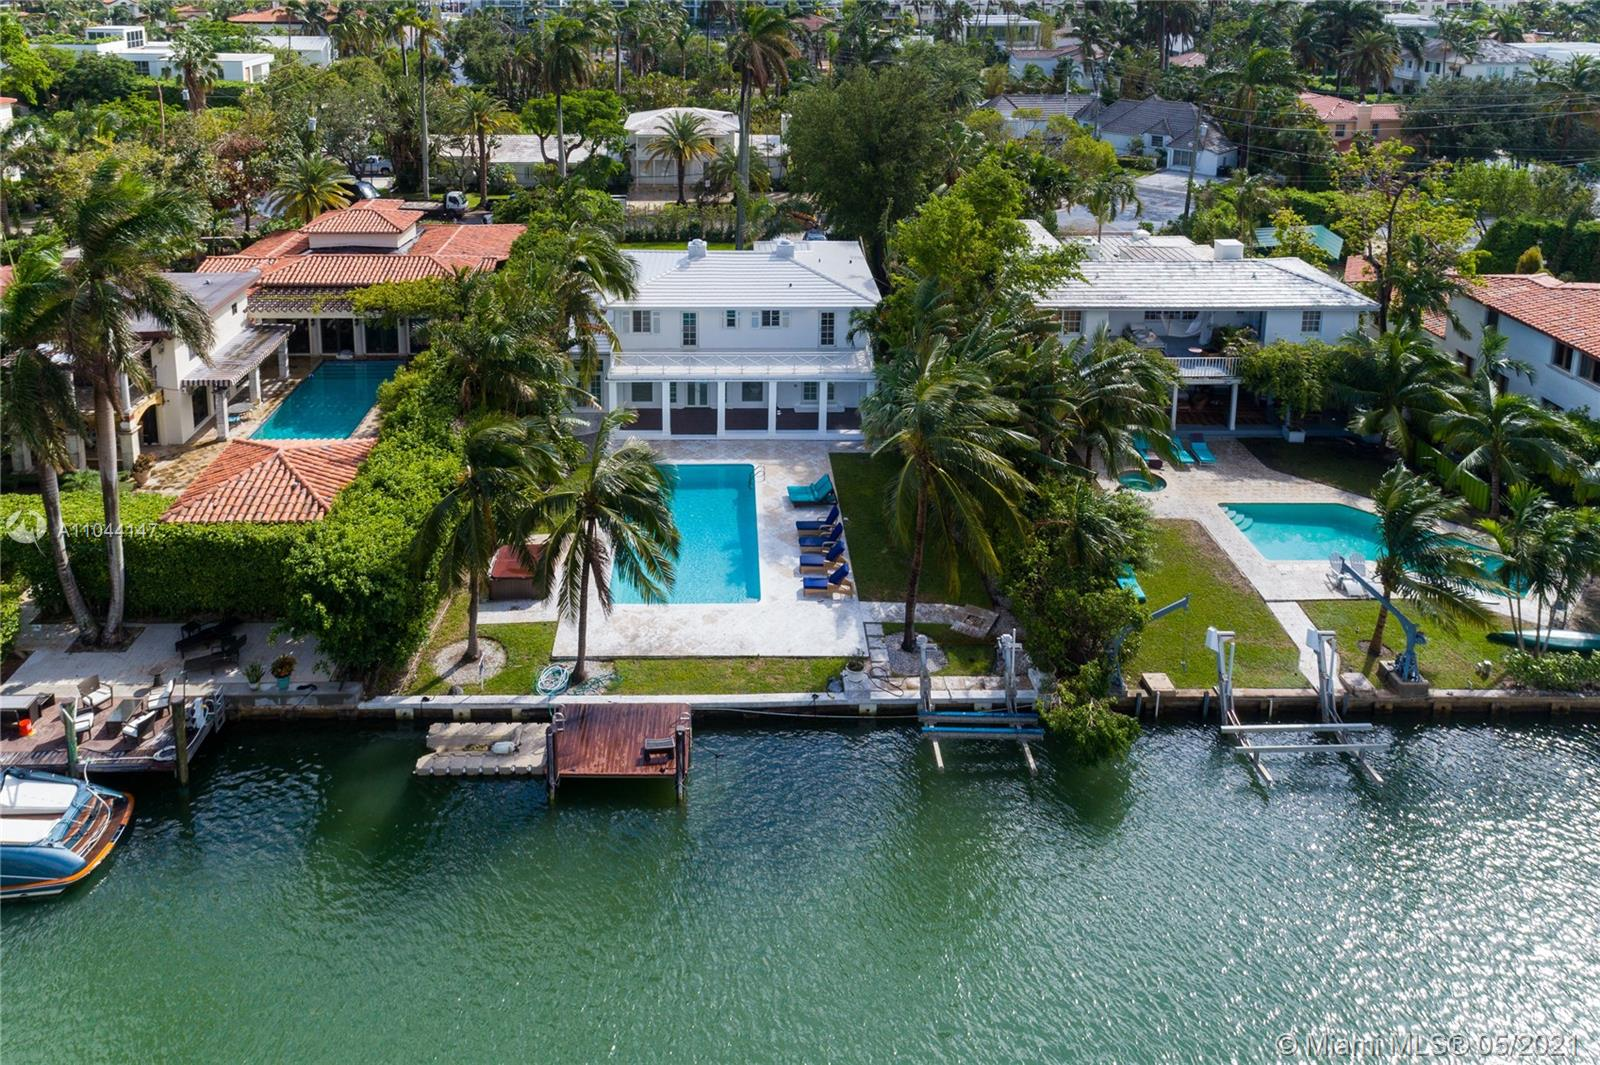 Tropical oasis with many original details on Gated Sunset Island 4. This is a 4 bed 3 bath pool home with maids quarter and office. Lush landscaping and a two car garage. Quiet street.75 ft of water frontage. Dock and boat lift.Walking distance to Lincoln rd and Sunset Harbor shops and restaurants. Location allows you to experience a true South Beach lifestyle.